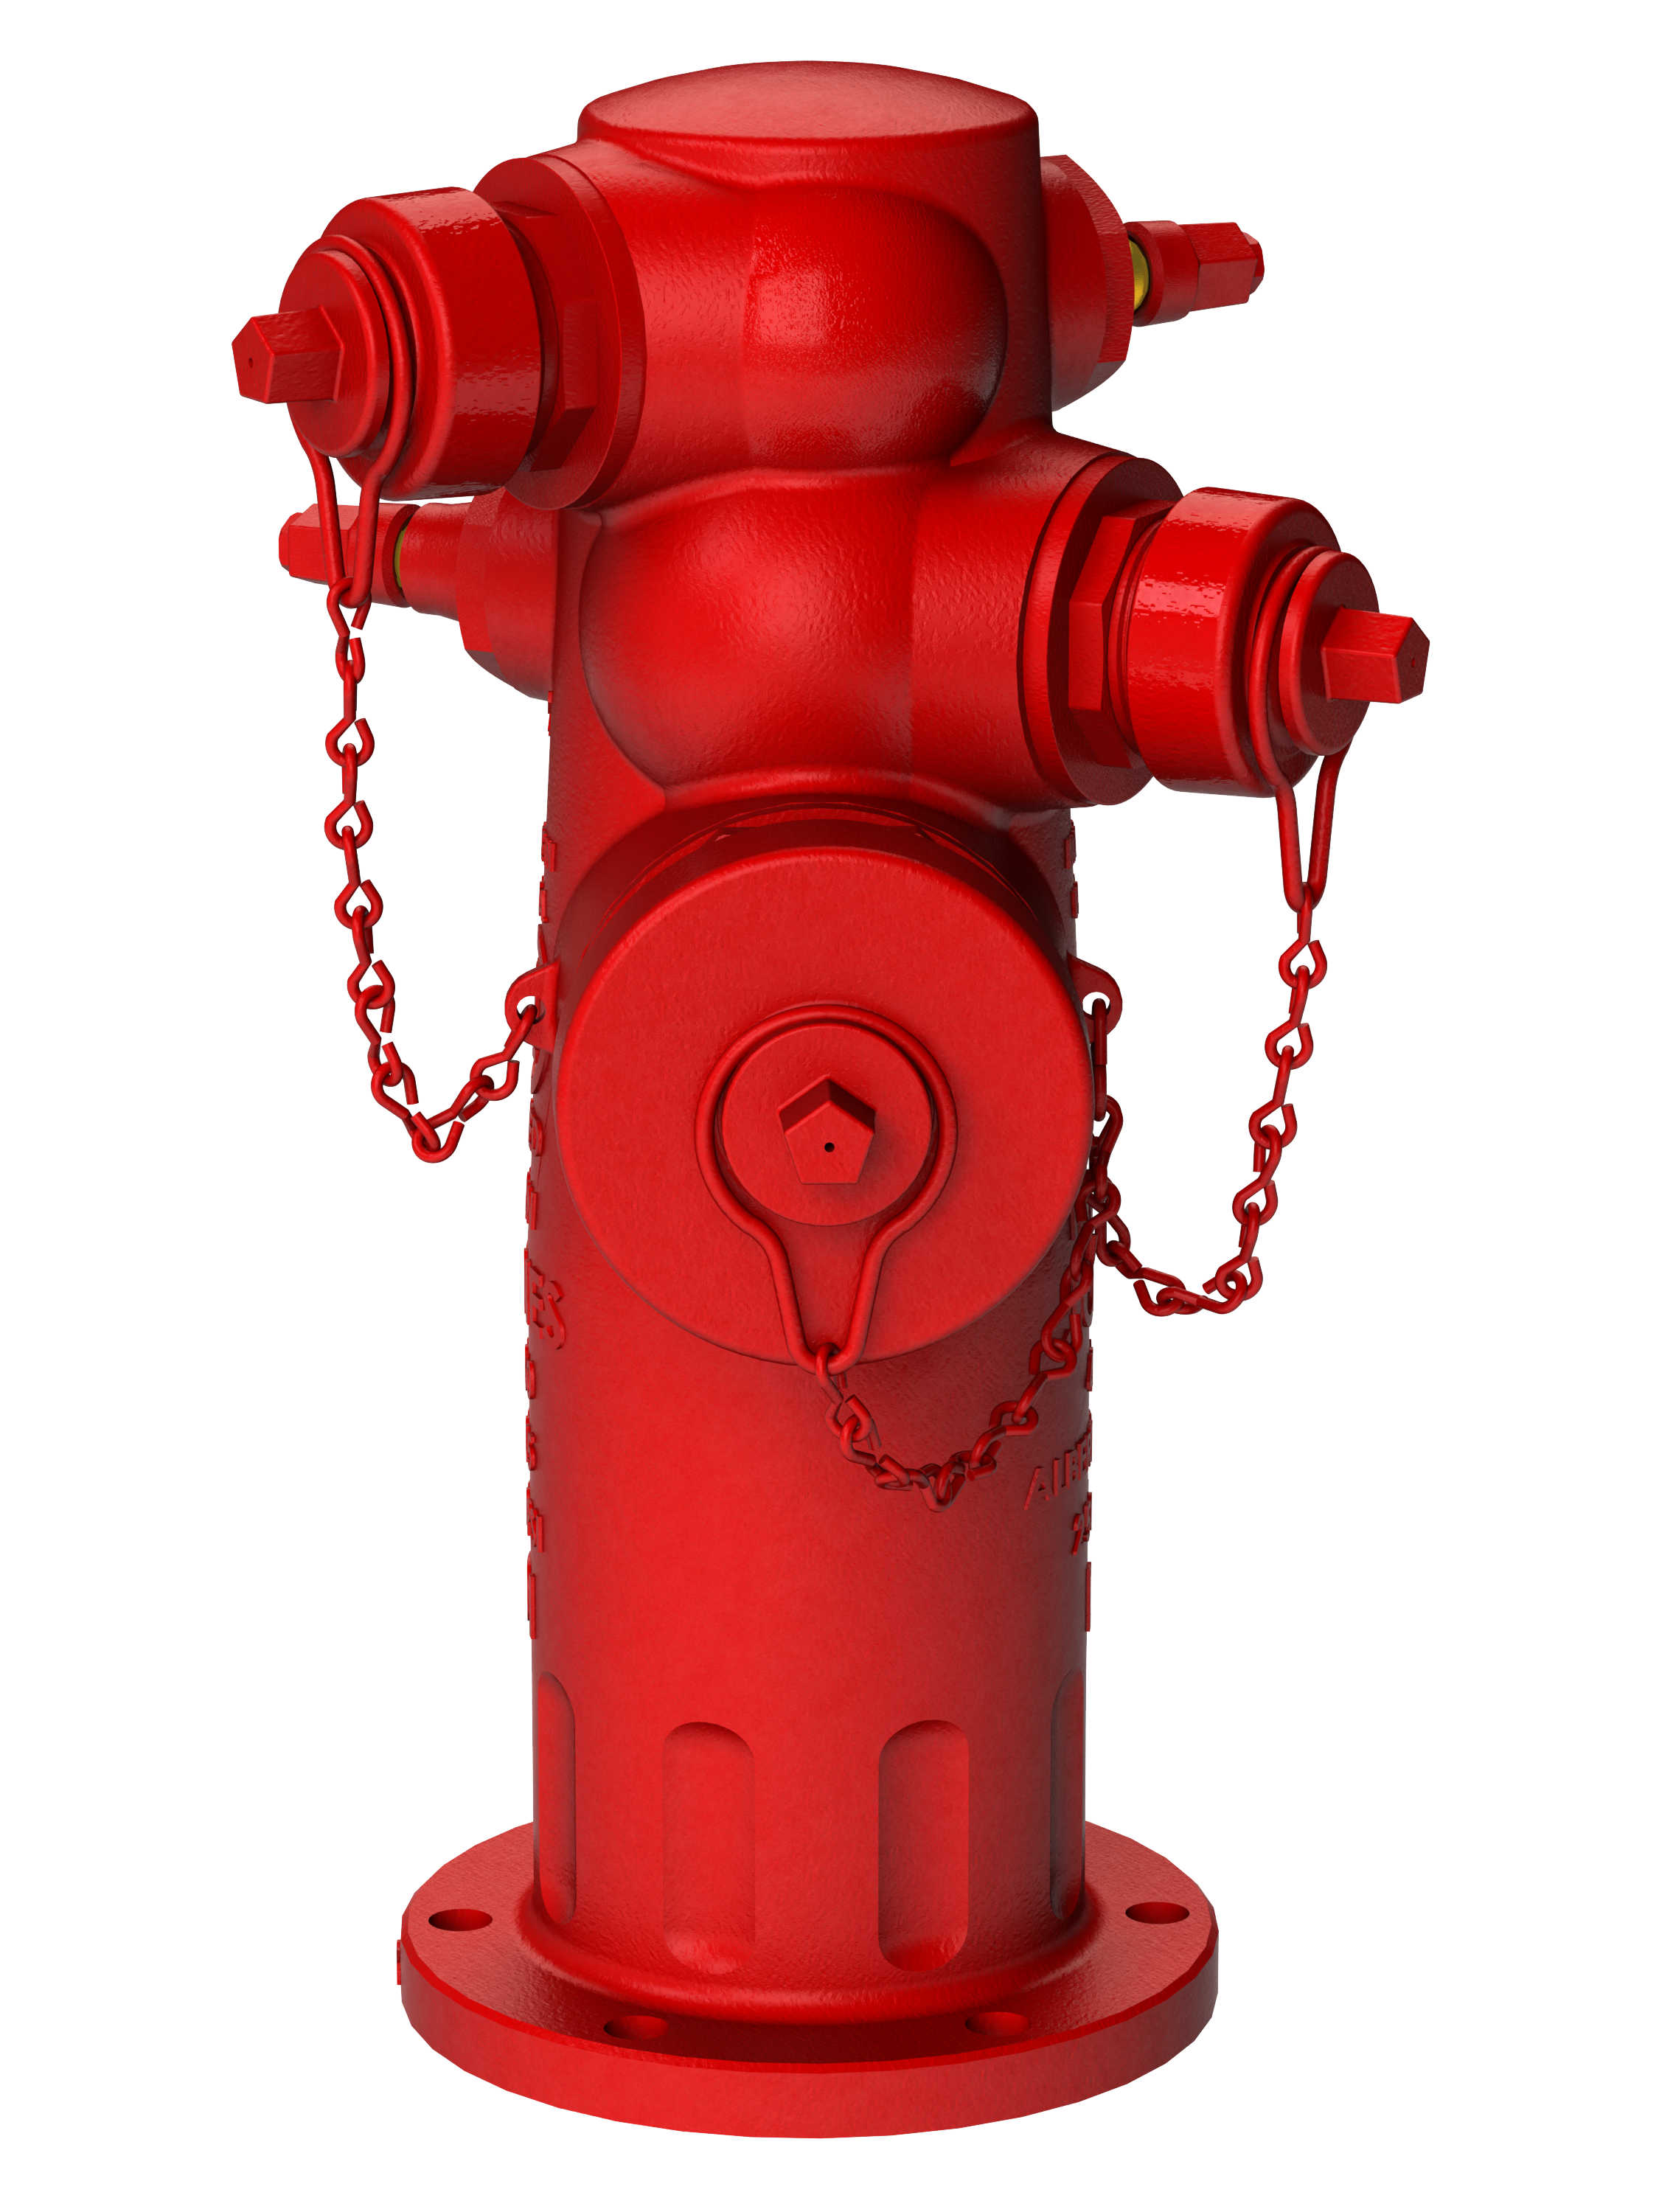 Fire Hydrant PNGs.